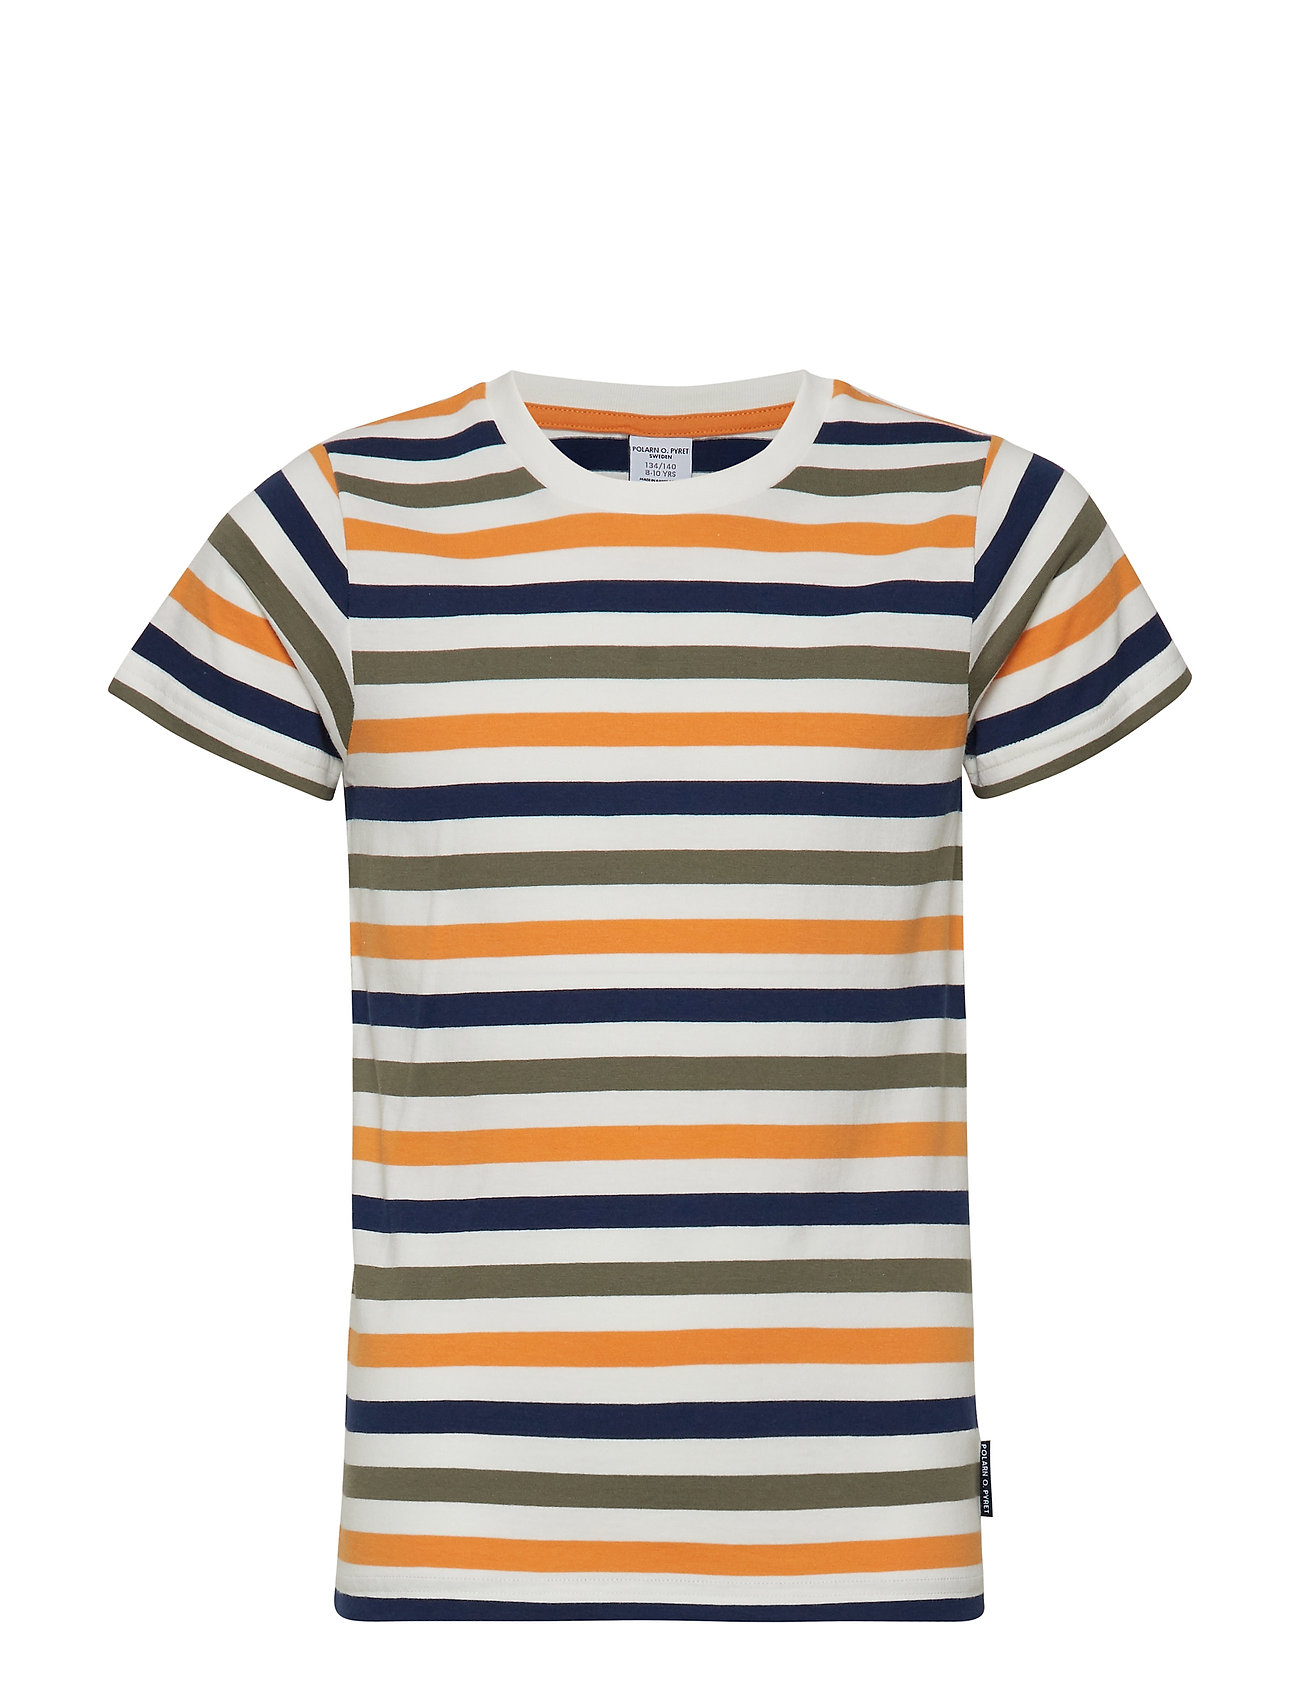 Polarn O. Pyret T-shirt S/S Striped School